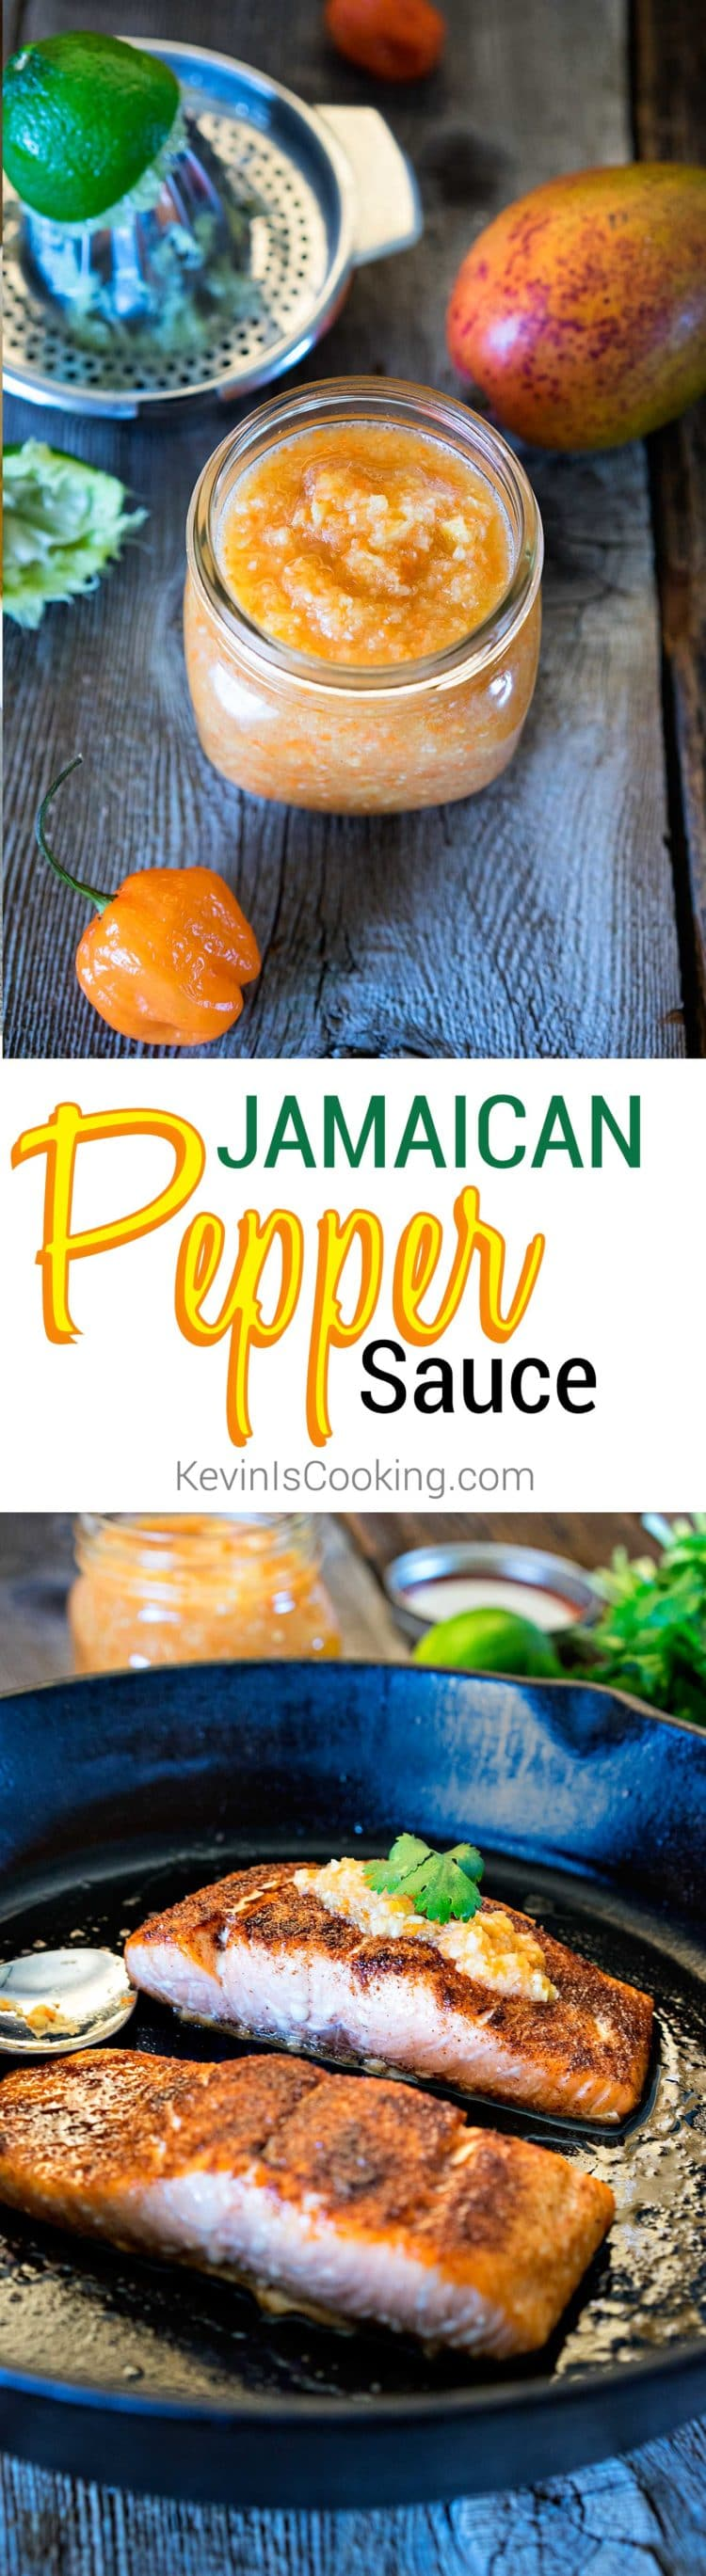 Jamaican Pepper Sauce. www.keviniscooking.com